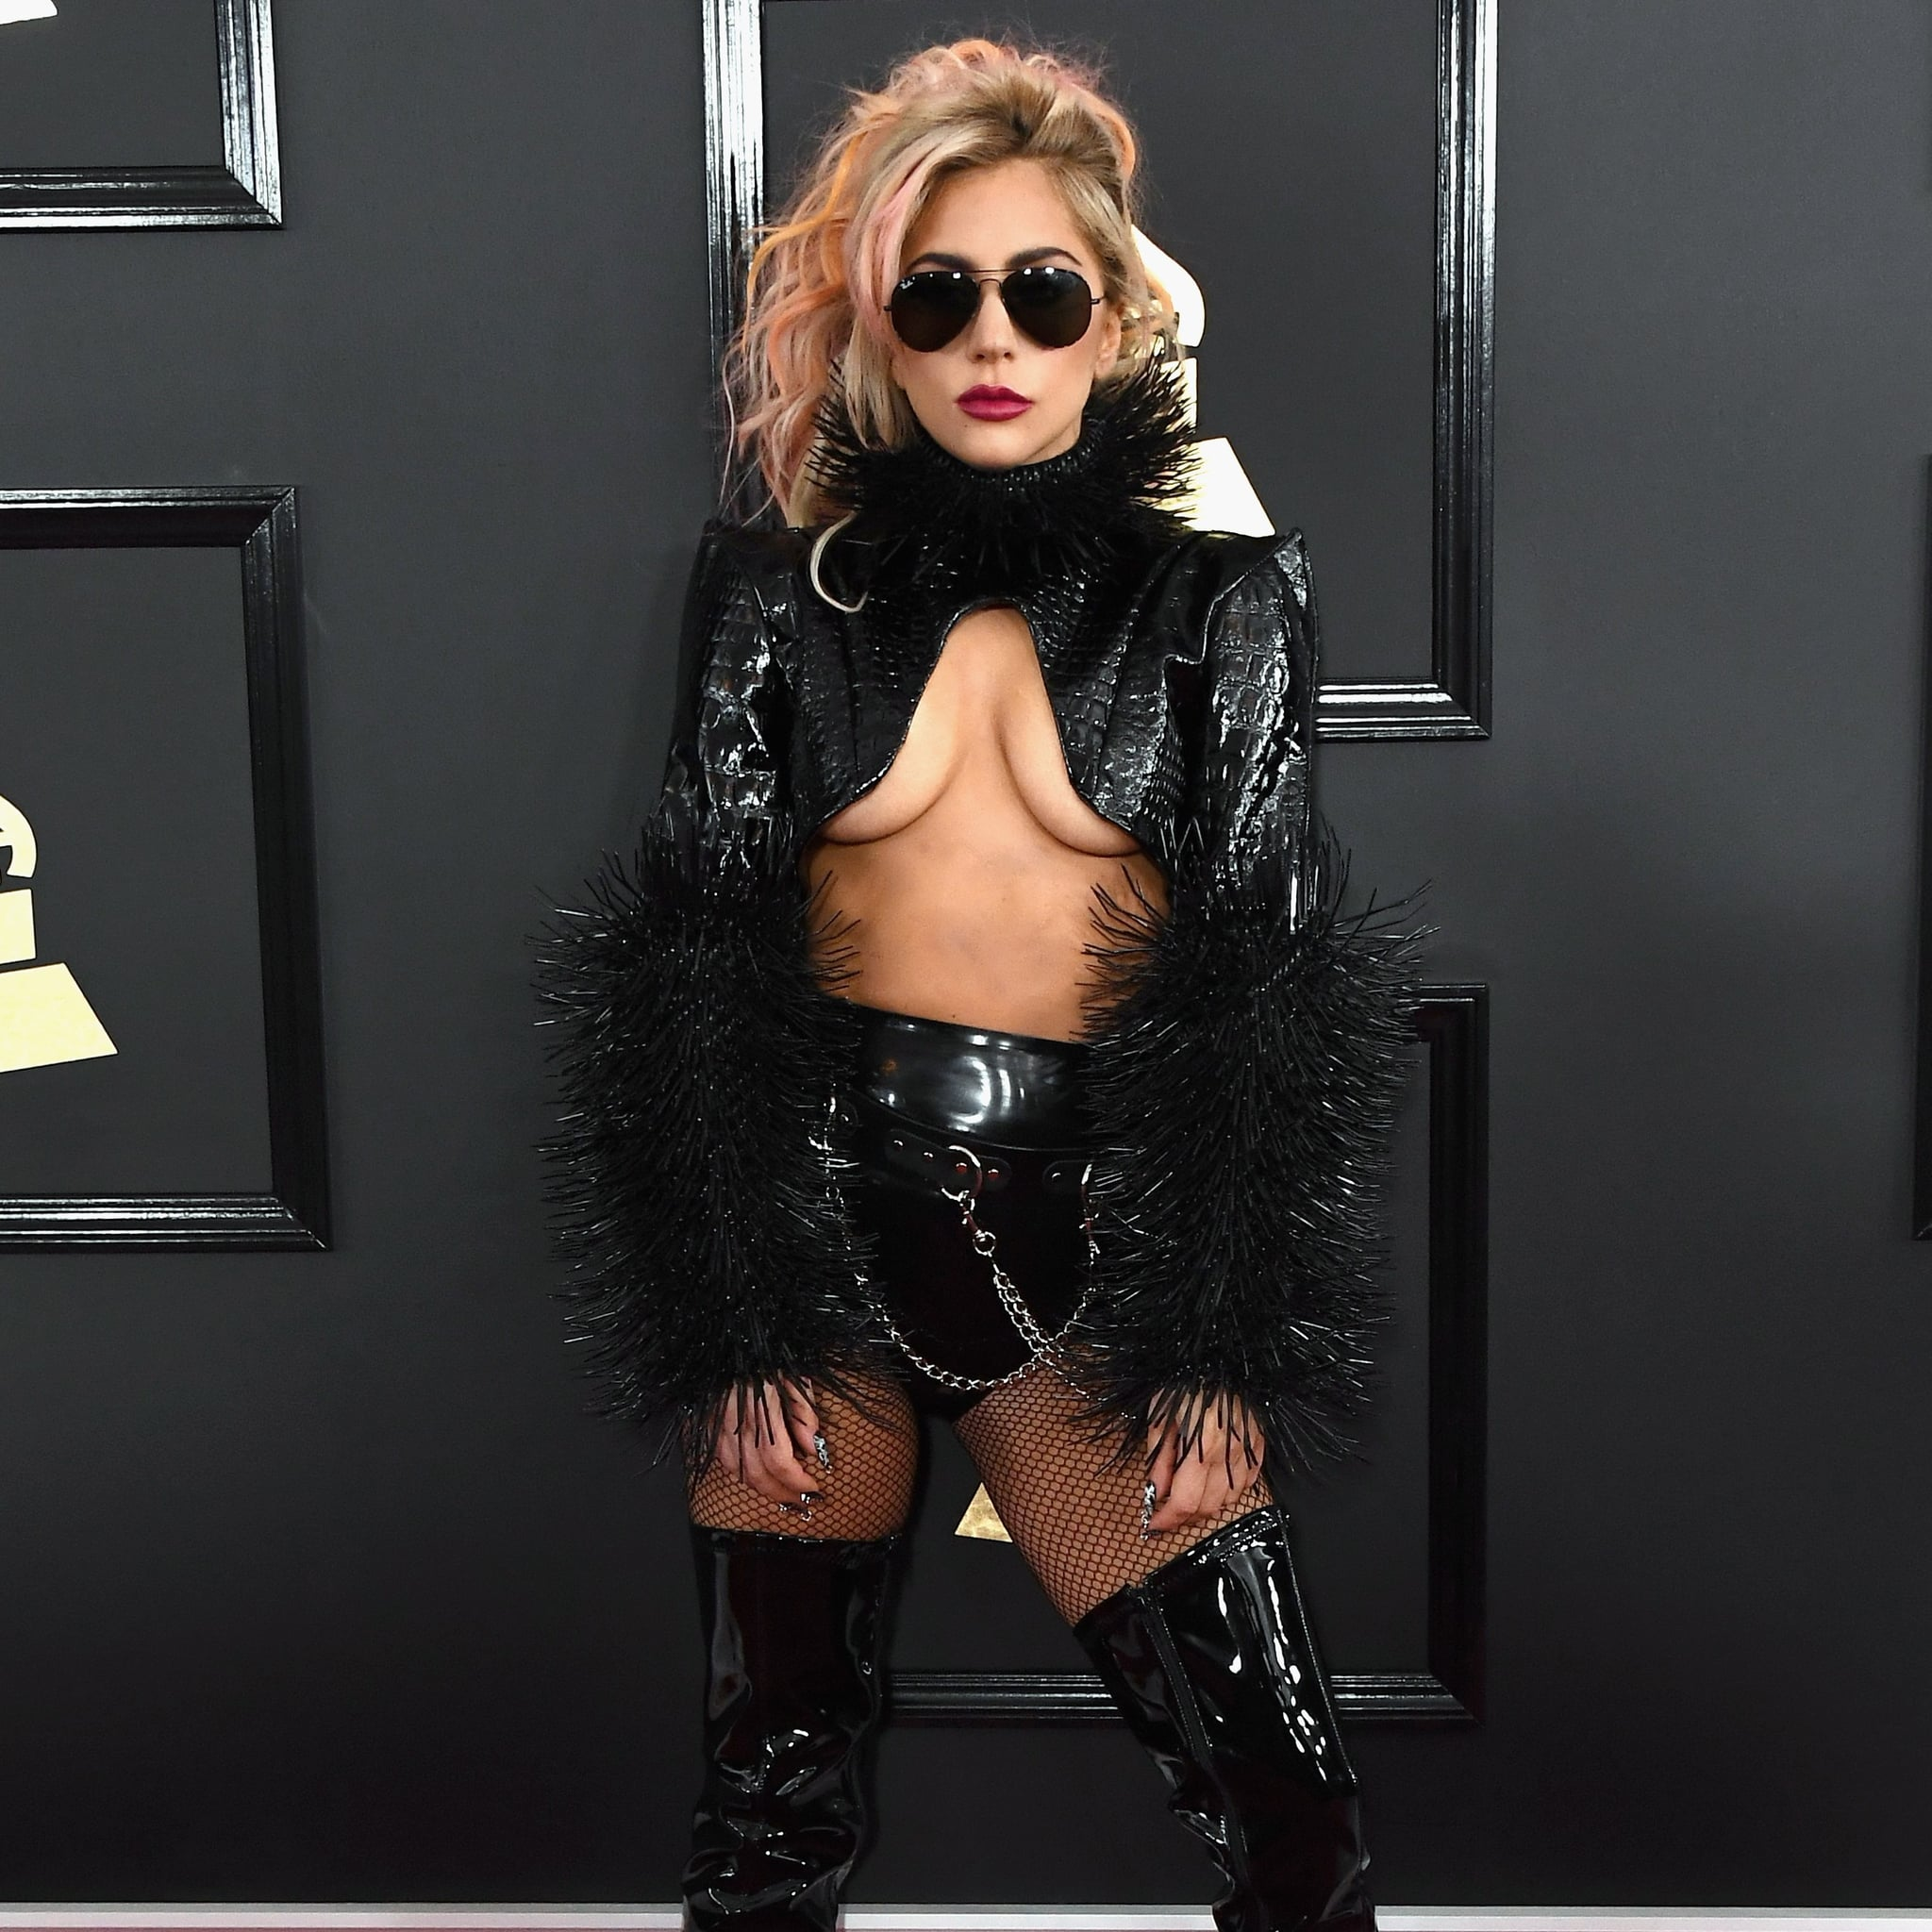 ad0a42fd4828 Lady Gaga s Outfit at the 2017 Grammys